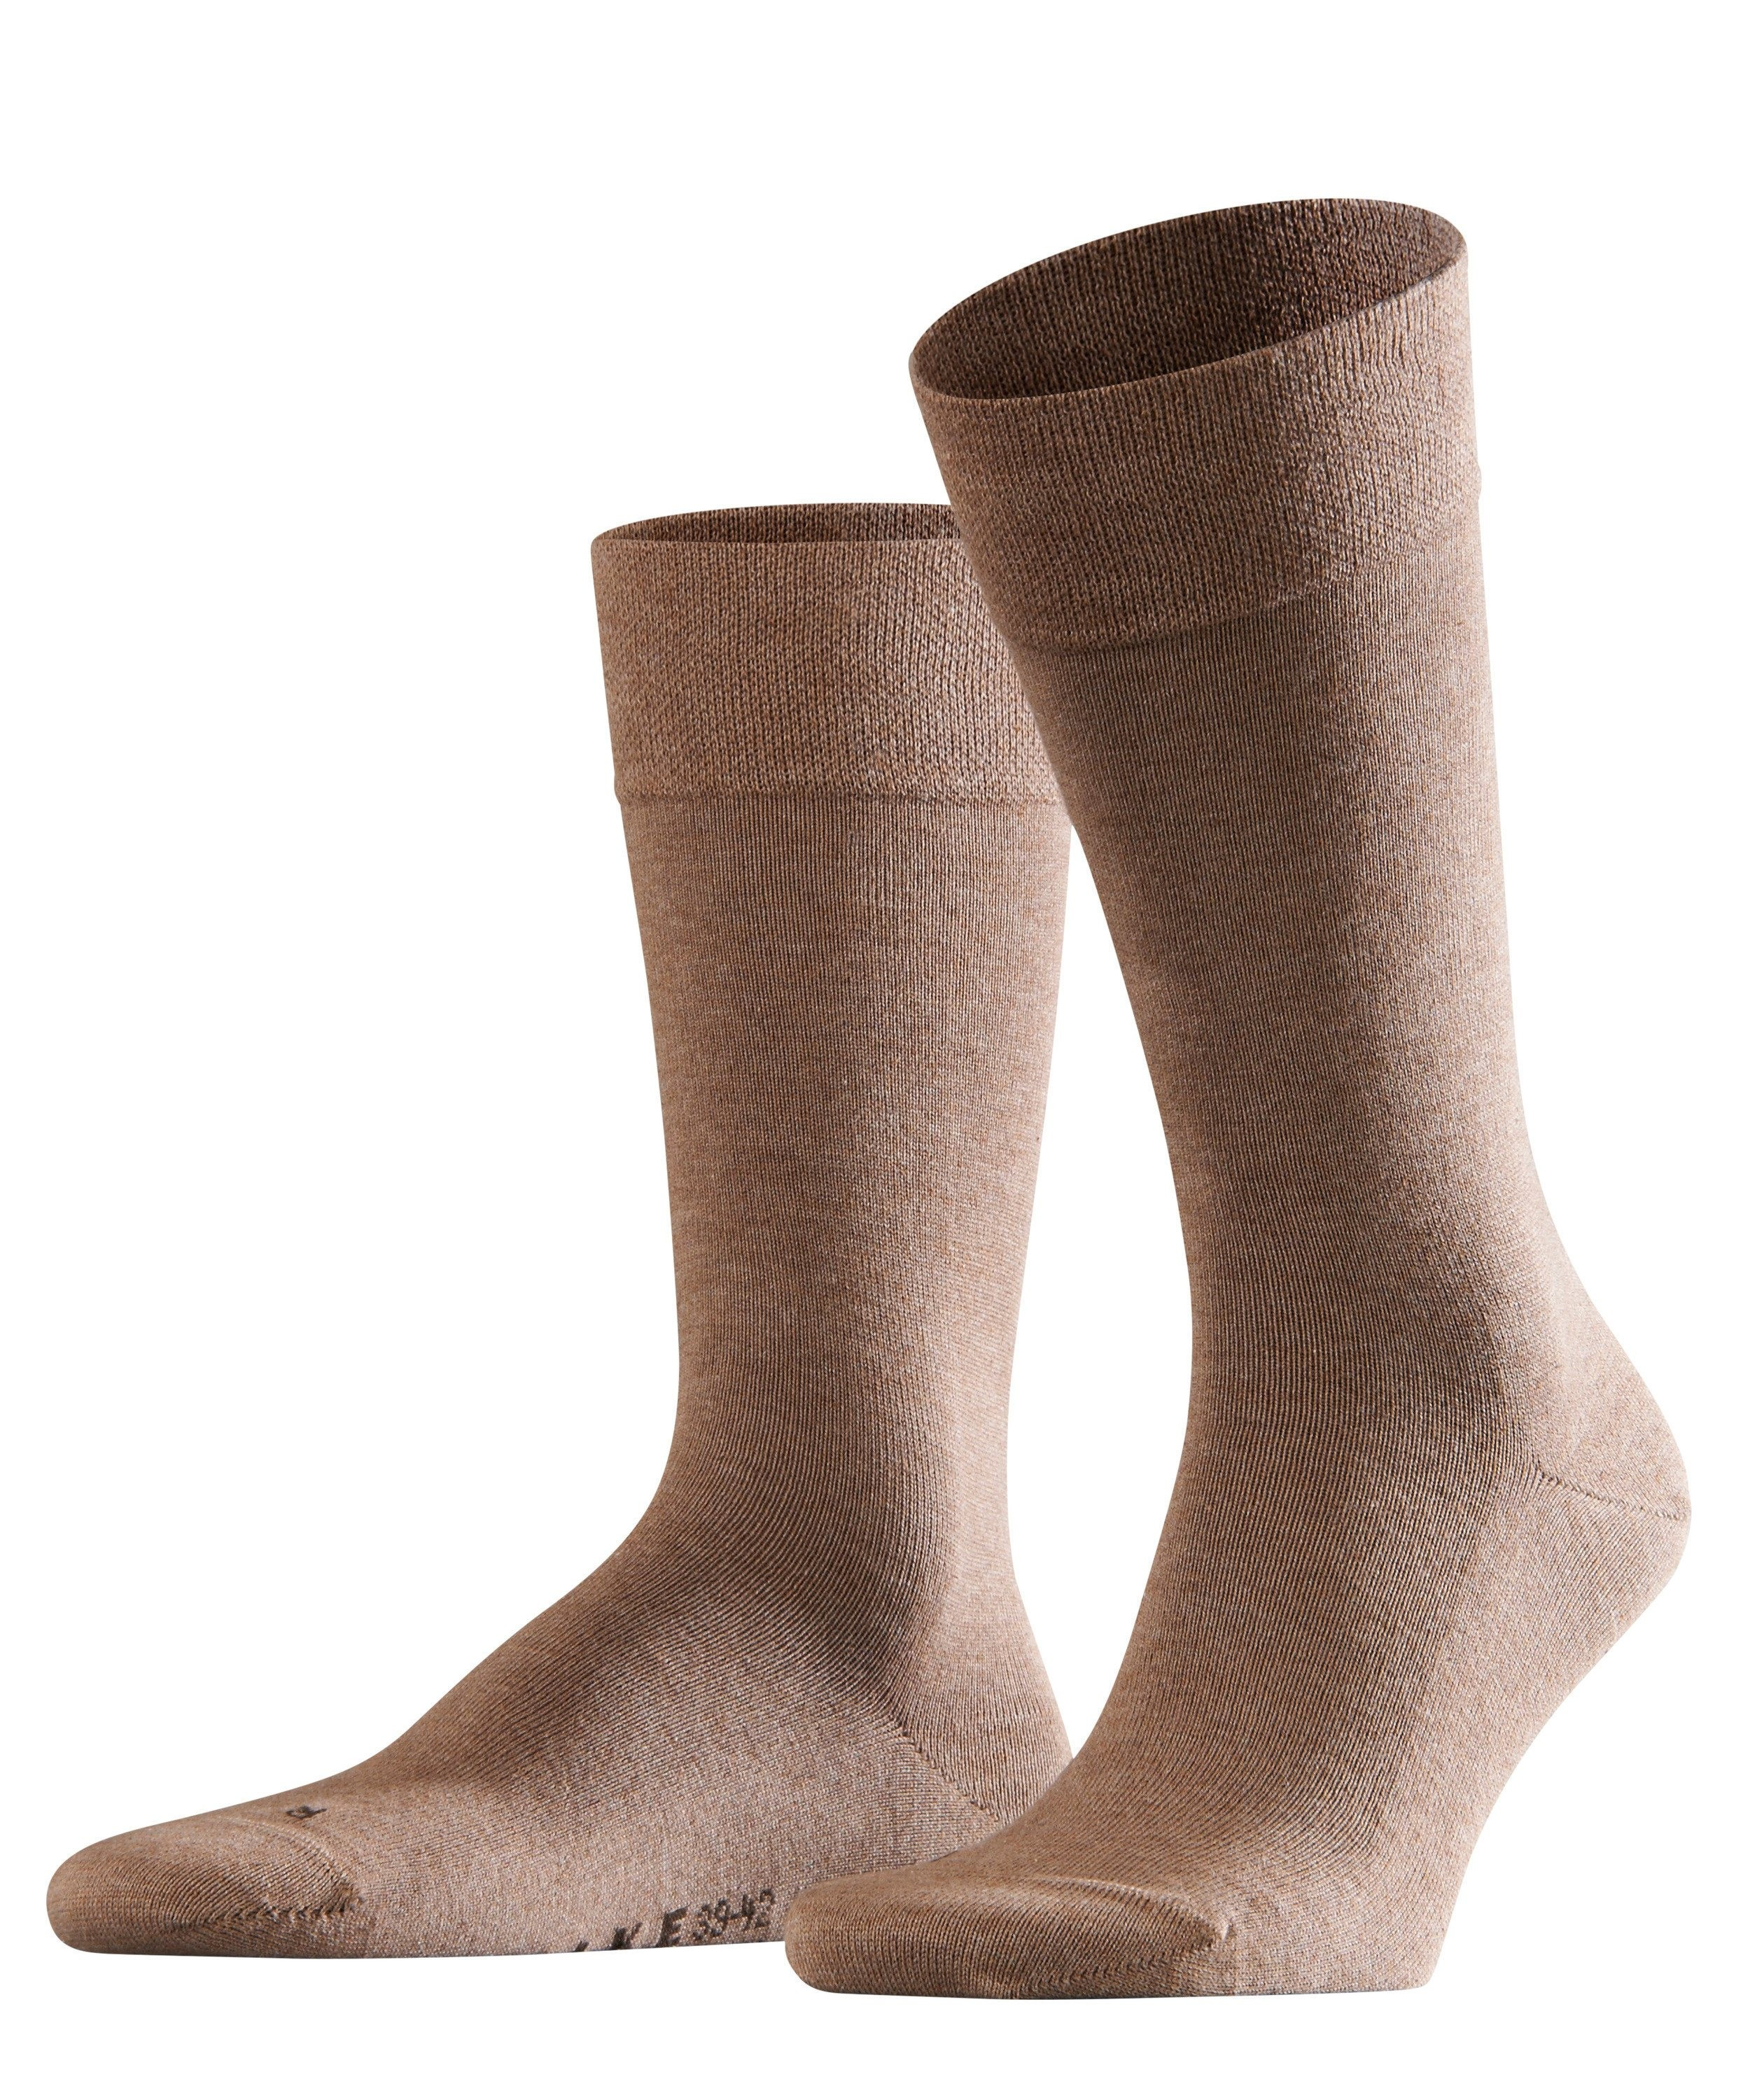 Chaussette Homme Sans Elastiques - 94% Coton - Falke Men Sensitive London 14616 Beige Nutmeg Mel 5410